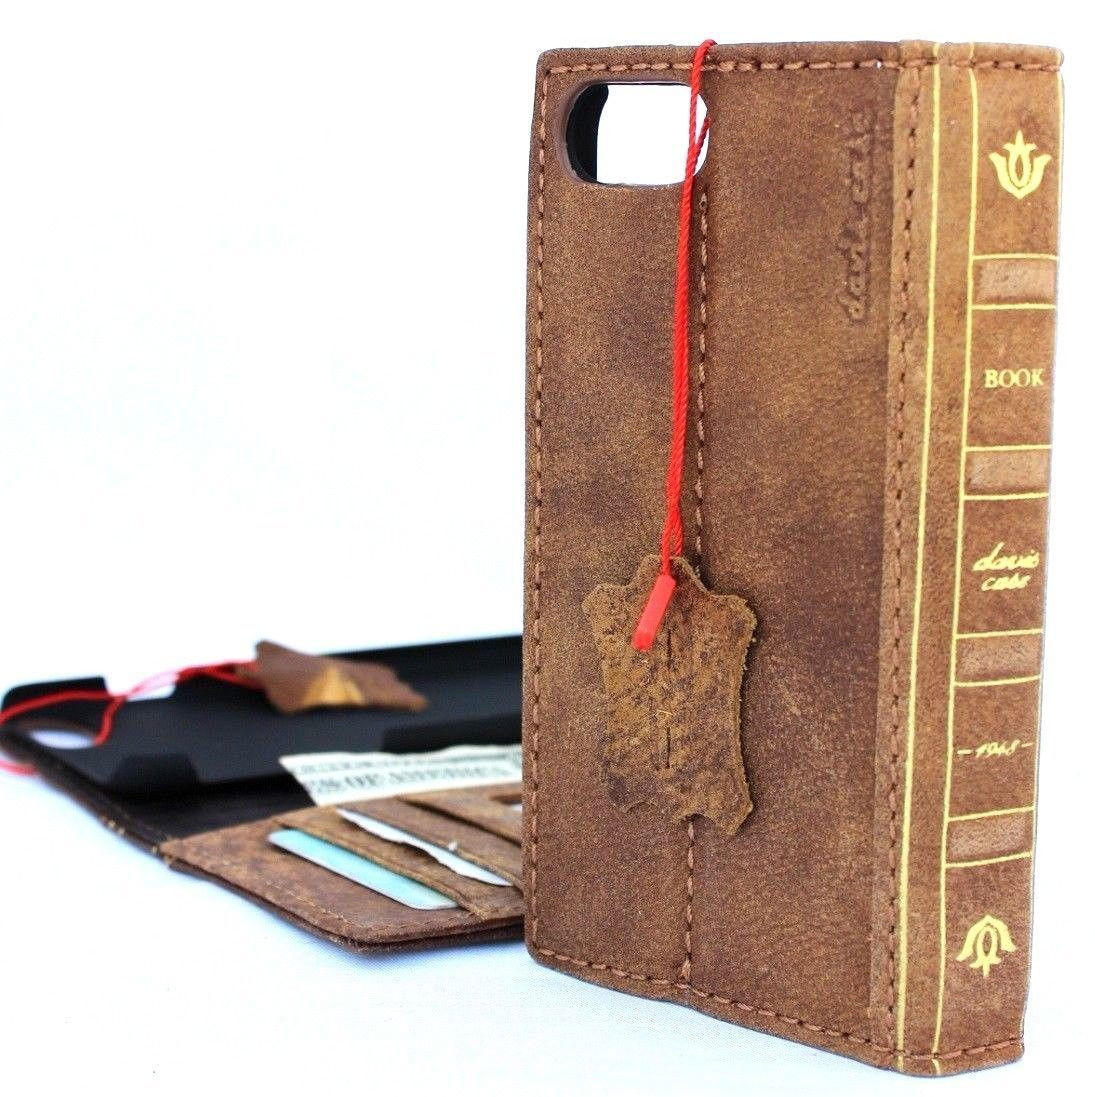 reputable site 6deac 47f14 Genuine Leather Case for iPhone 8 Plus bible book wallet cover id window  cards slots Slim holder Jafo vintage brown classic Daviscase